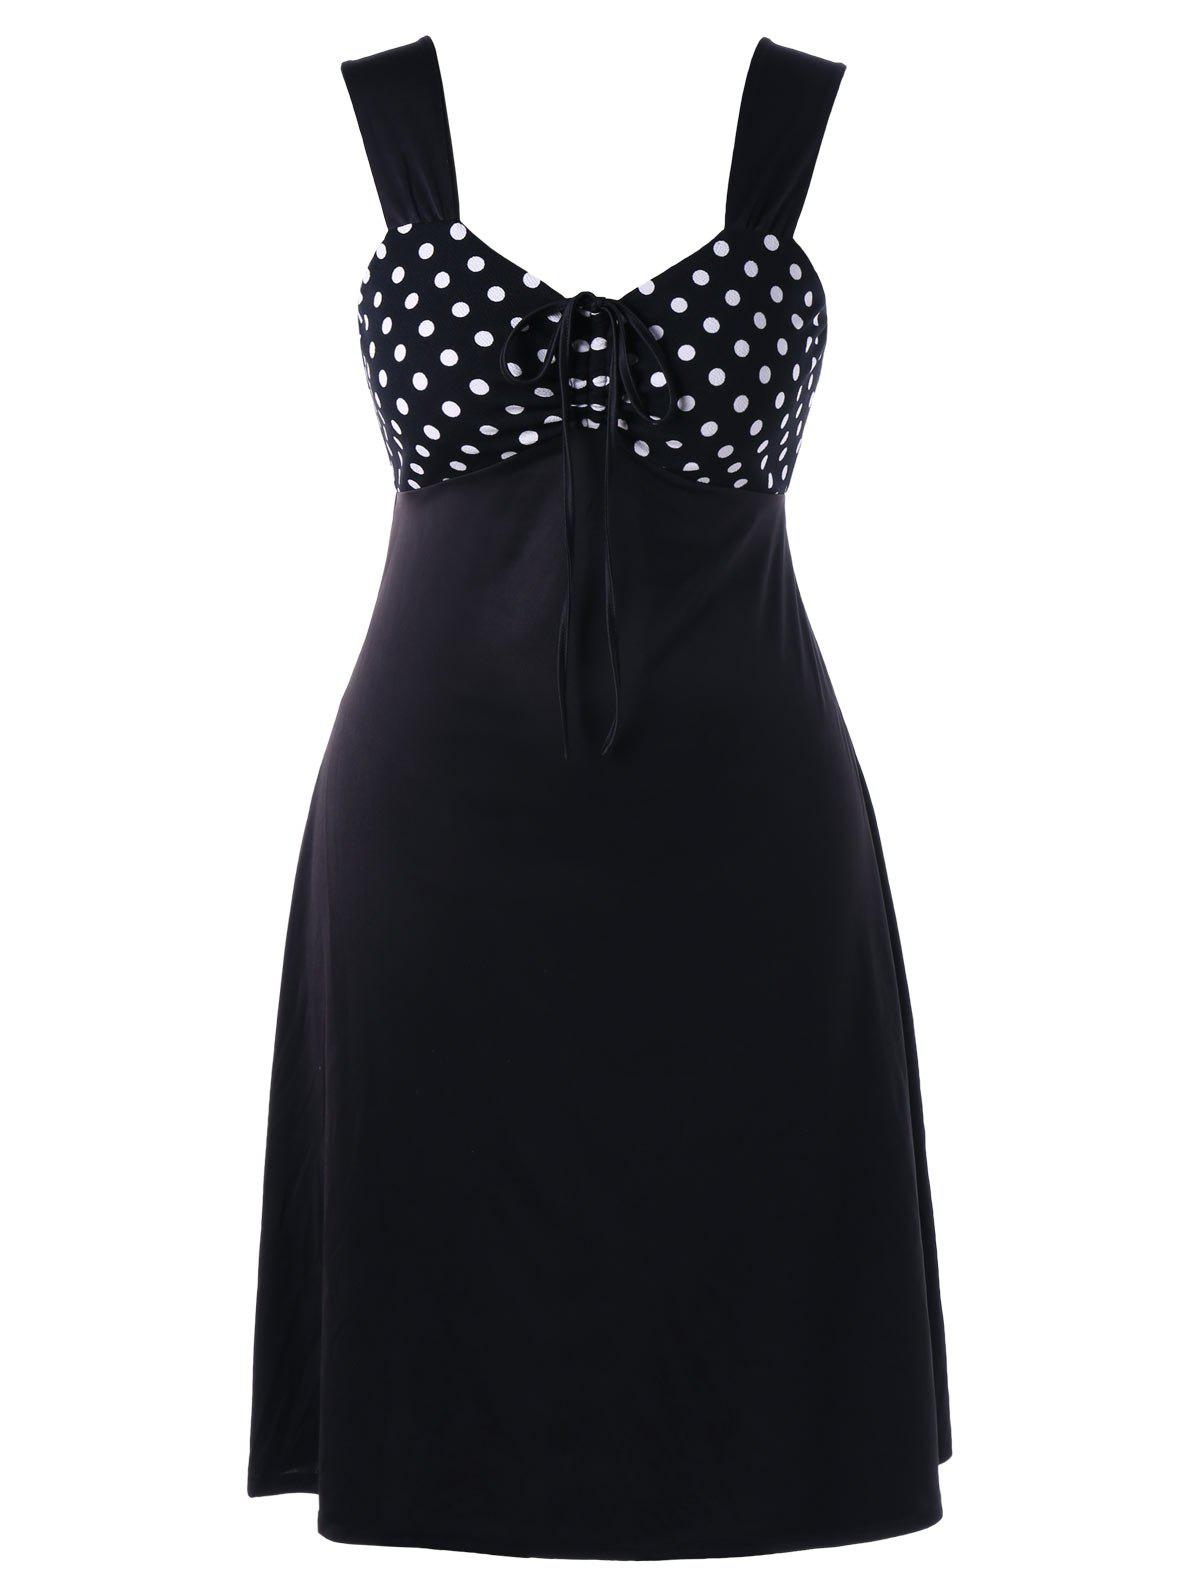 Polka Dot Sleeveless Plus Size Sweetheart DressWOMEN<br><br>Size: XL; Color: WHITE AND BLACK; Style: Vintage; Material: Polyester,Spandex; Silhouette: A-Line; Dresses Length: Knee-Length; Neckline: Sweetheart Neck; Sleeve Length: Sleeveless; Pattern Type: Polka Dot; With Belt: No; Season: Summer; Weight: 0.3700kg; Package Contents: 1 x Dress;